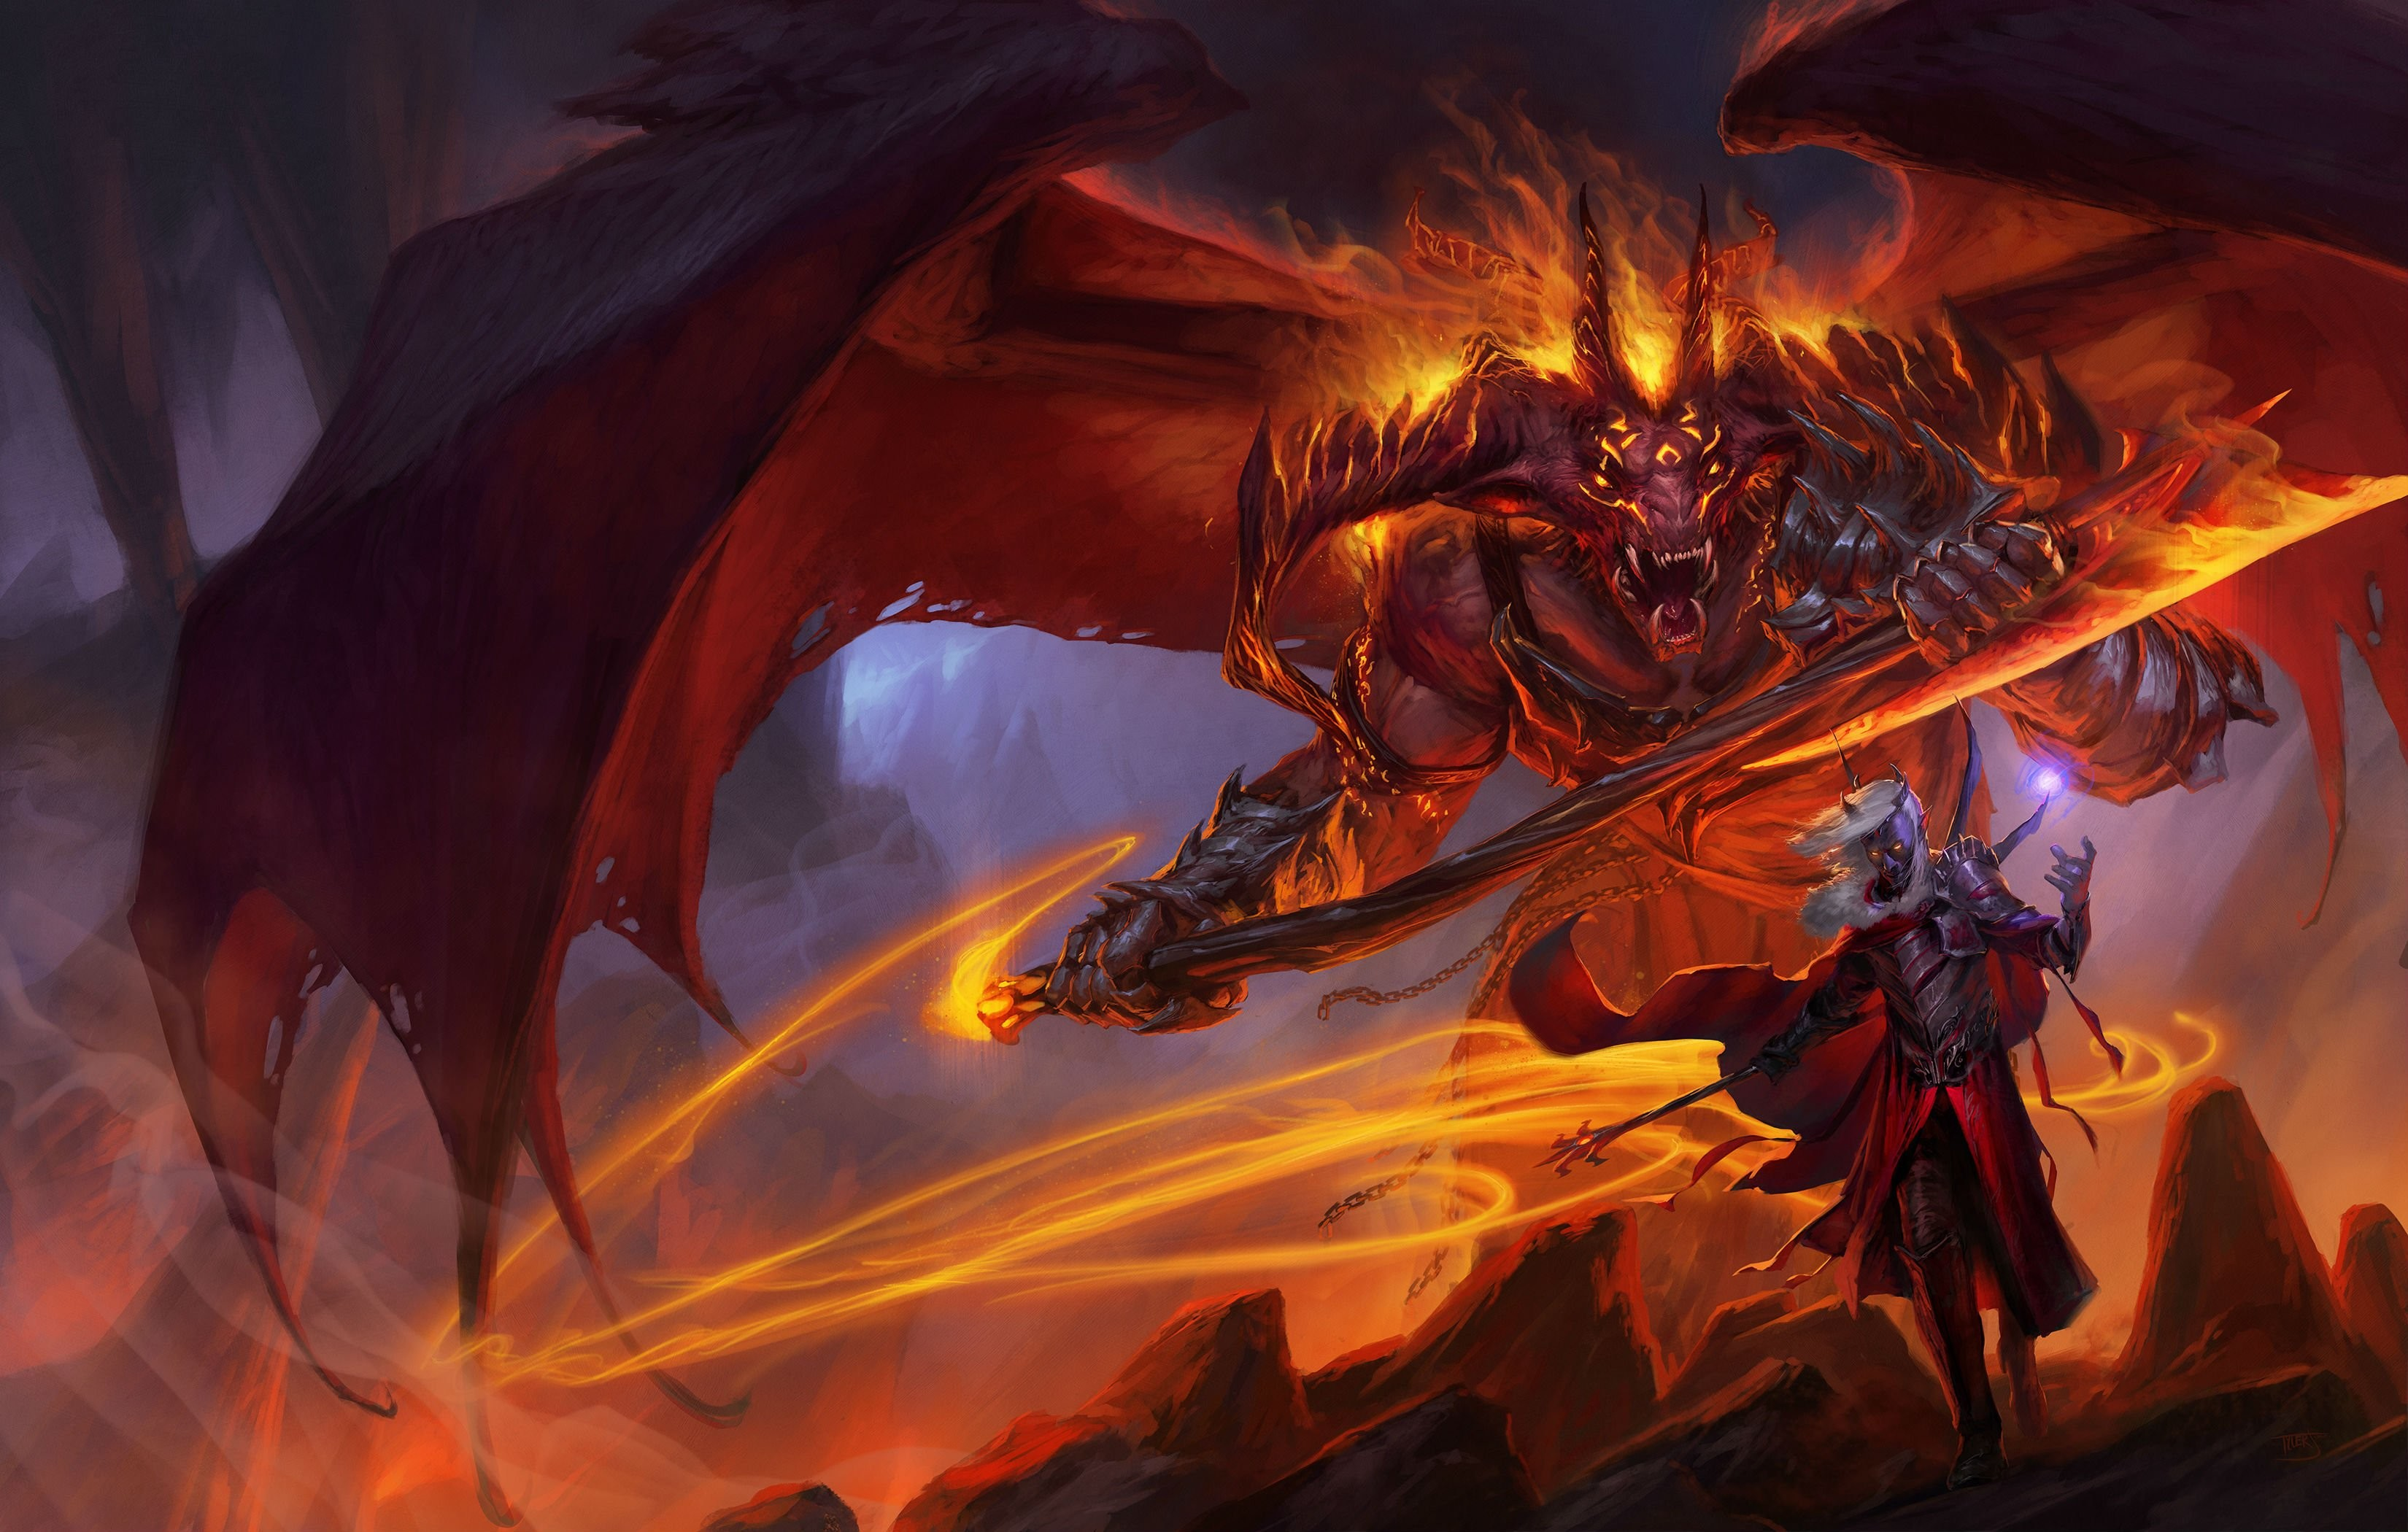 DUNGEONS DRAGONS Forgotten Realms magic 1scl rpg action adventure puzzle  fantasy warrior dragon wallpaper | | 821037 | WallpaperUP